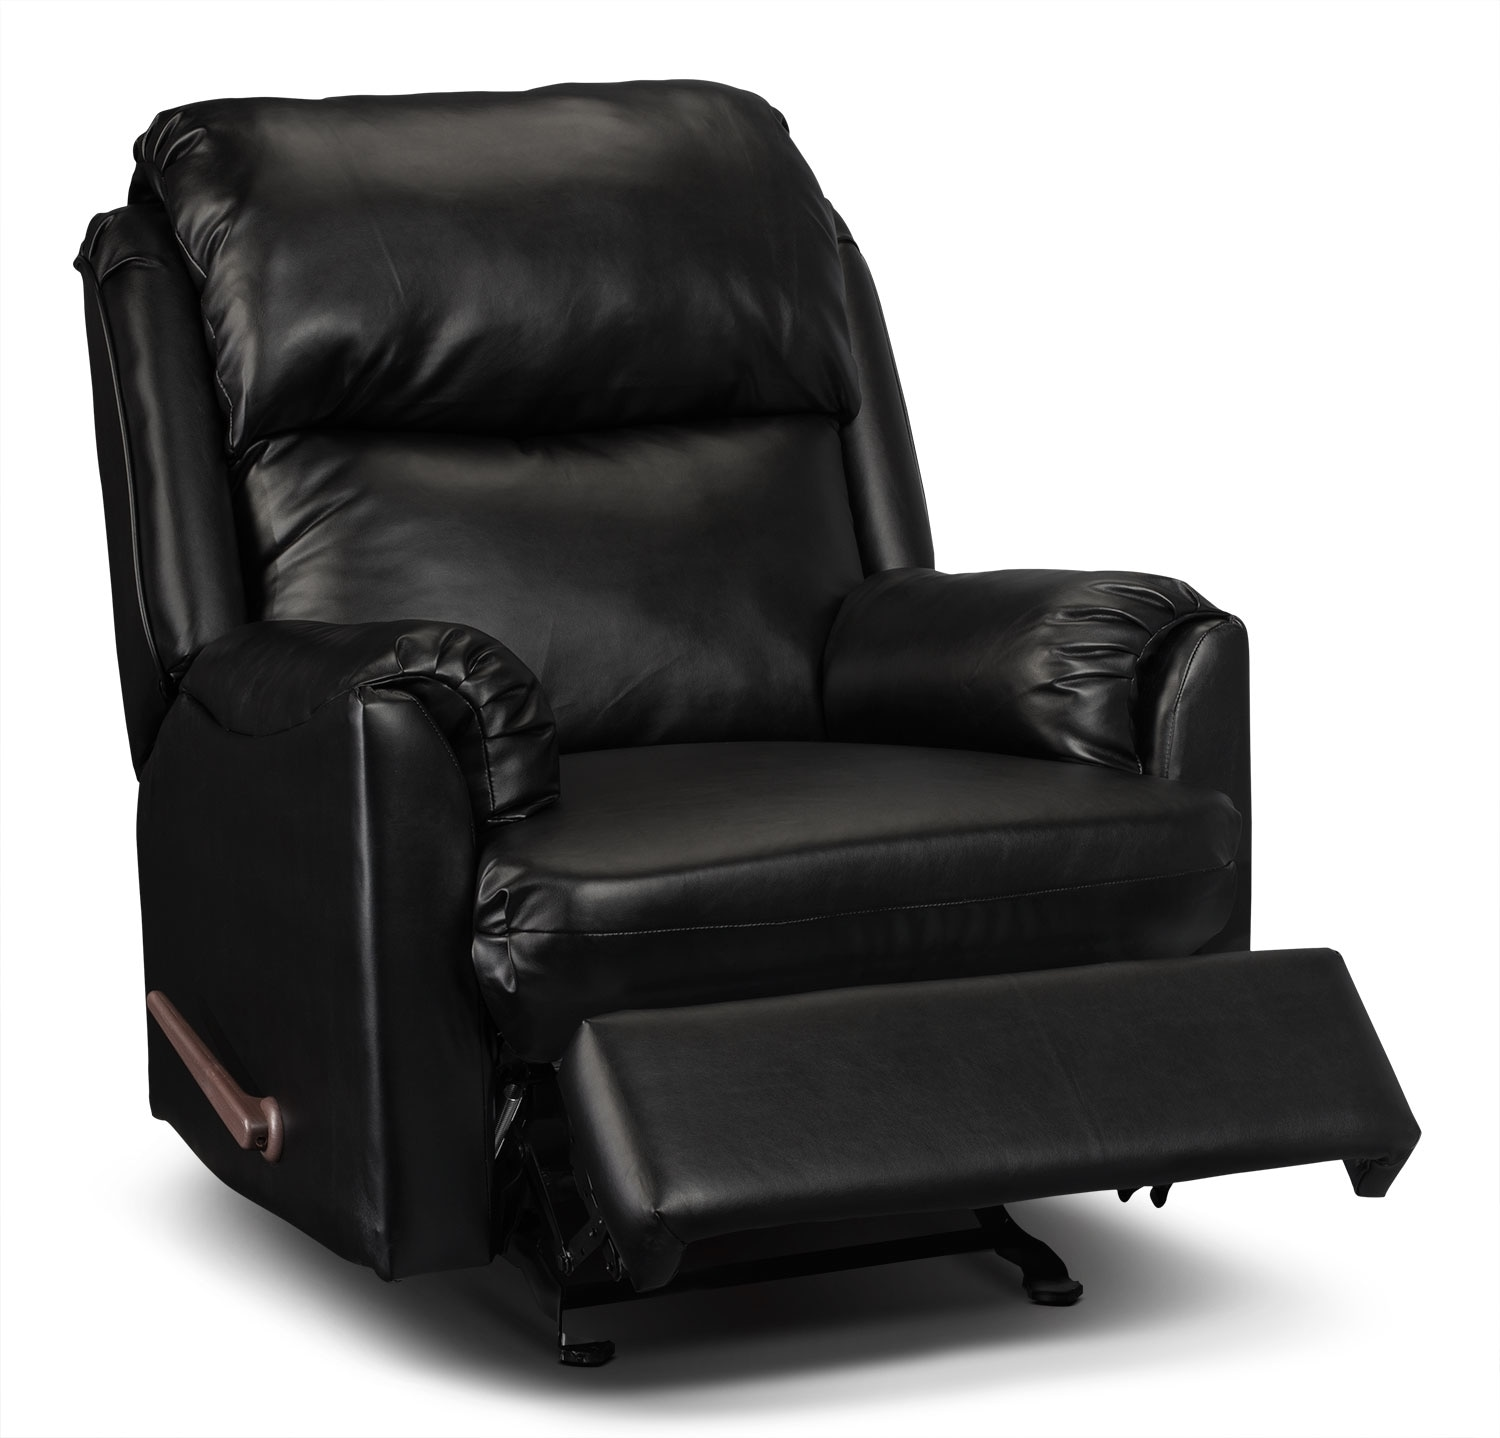 Drogba faux leather recliner black the brick for Faux leather living room furniture